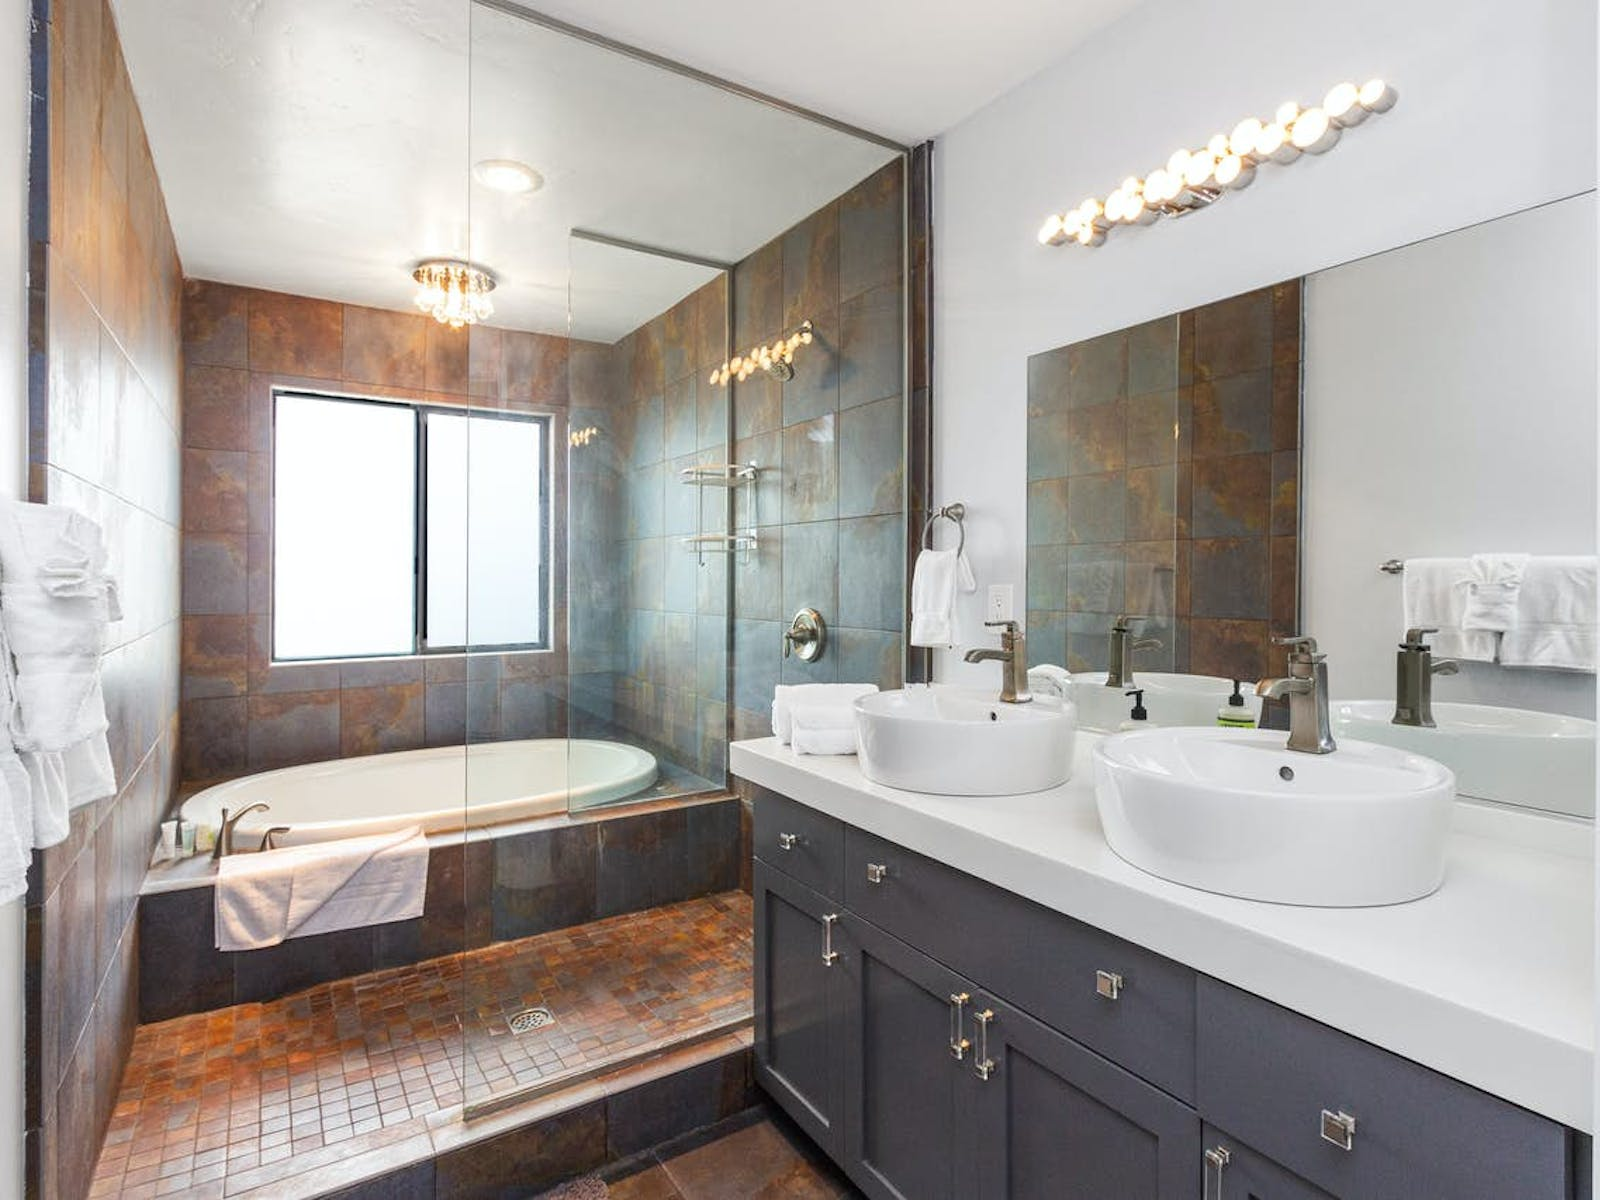 bathroom modeled after a European wet room, with a fully tiled, open layout for the shower and sleekly sunken tub